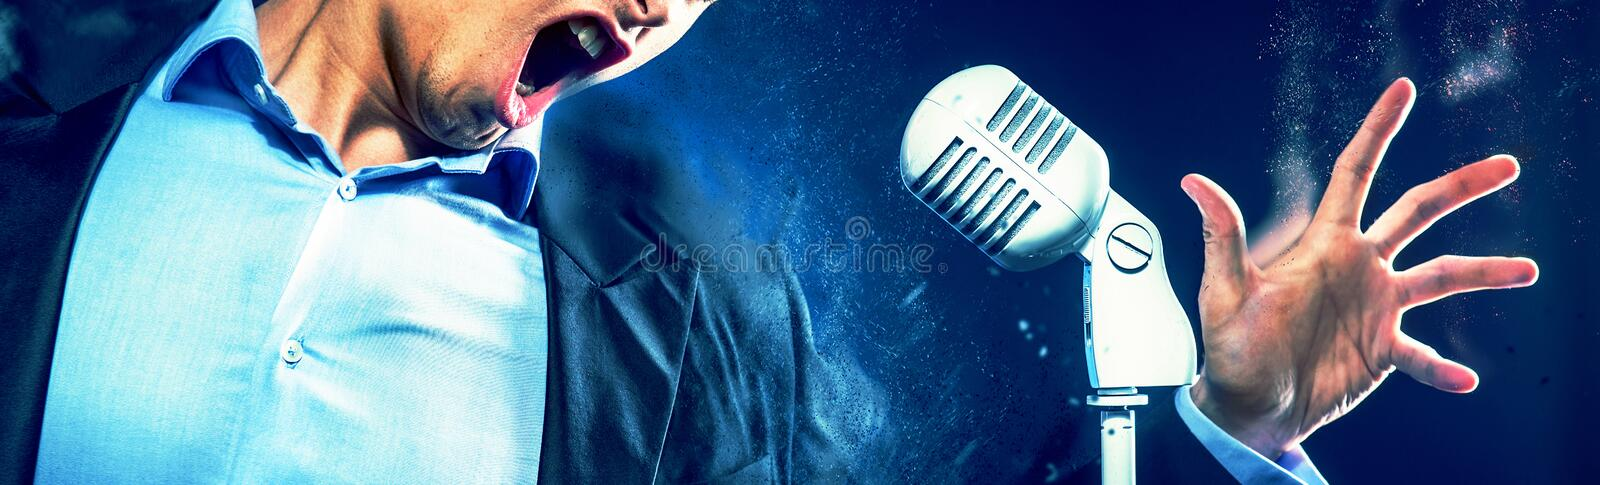 Cropped image caucasian expressive man open mouth singing on vintage white microphone. Image with digital effects stock photo